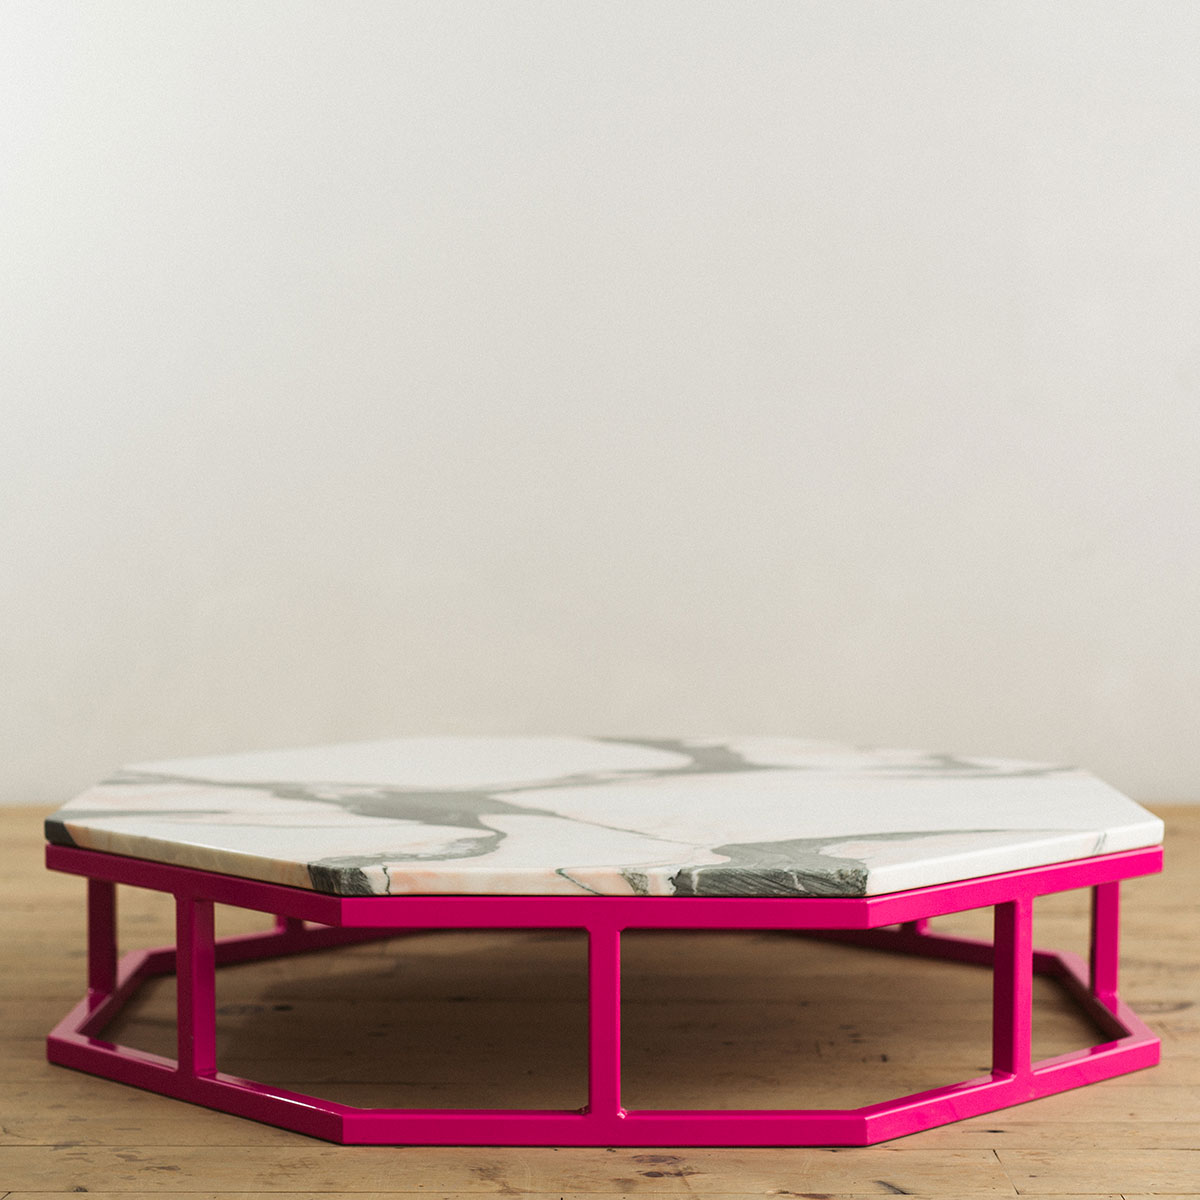 ... Octagon Steel Marble Coffee Table Pink 2 ...